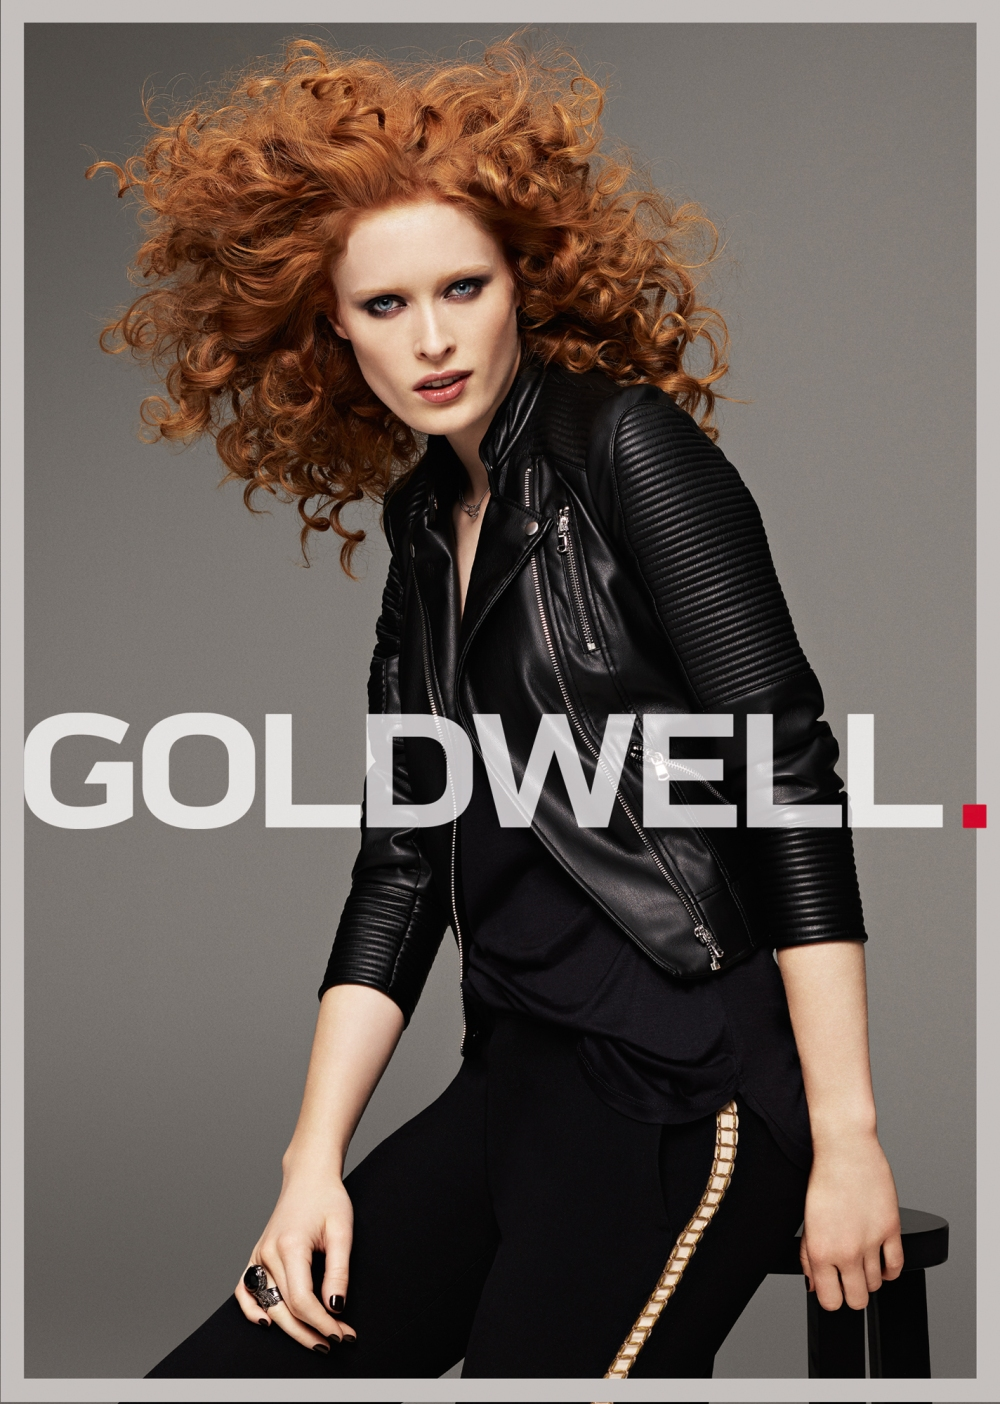 goldwell-by-ralph-mecke-4